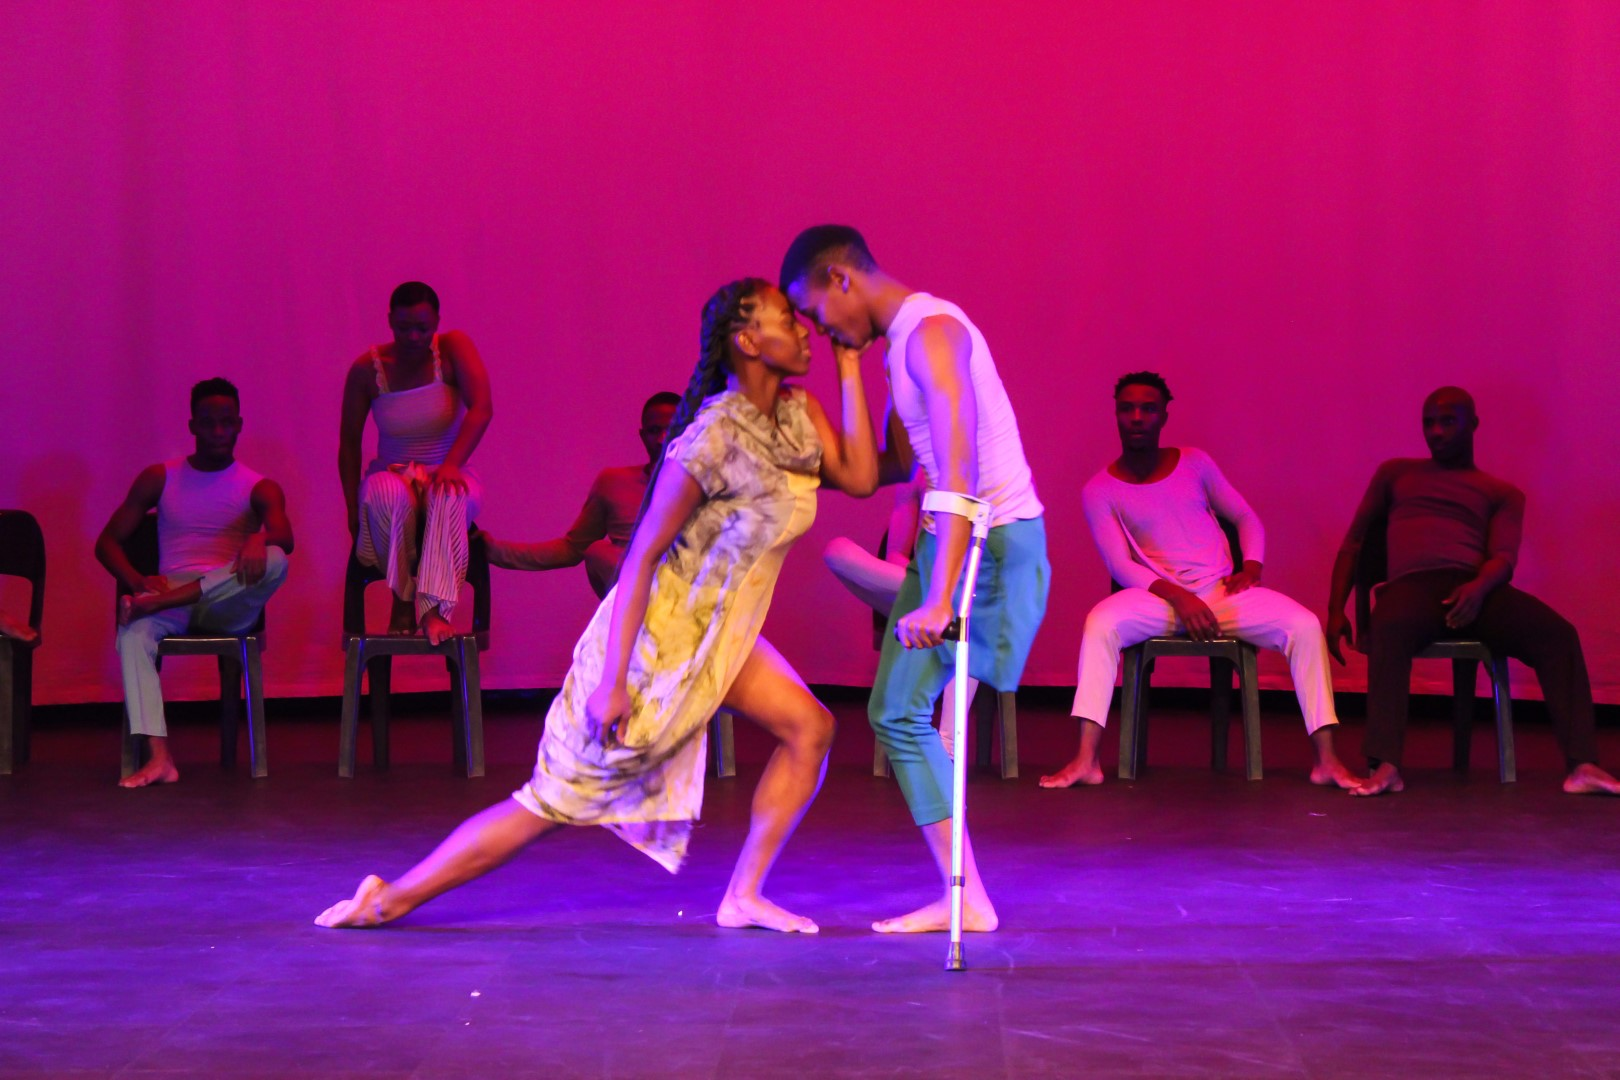 Highlights from the Dance Experia festival at the Hexagon Theatre.